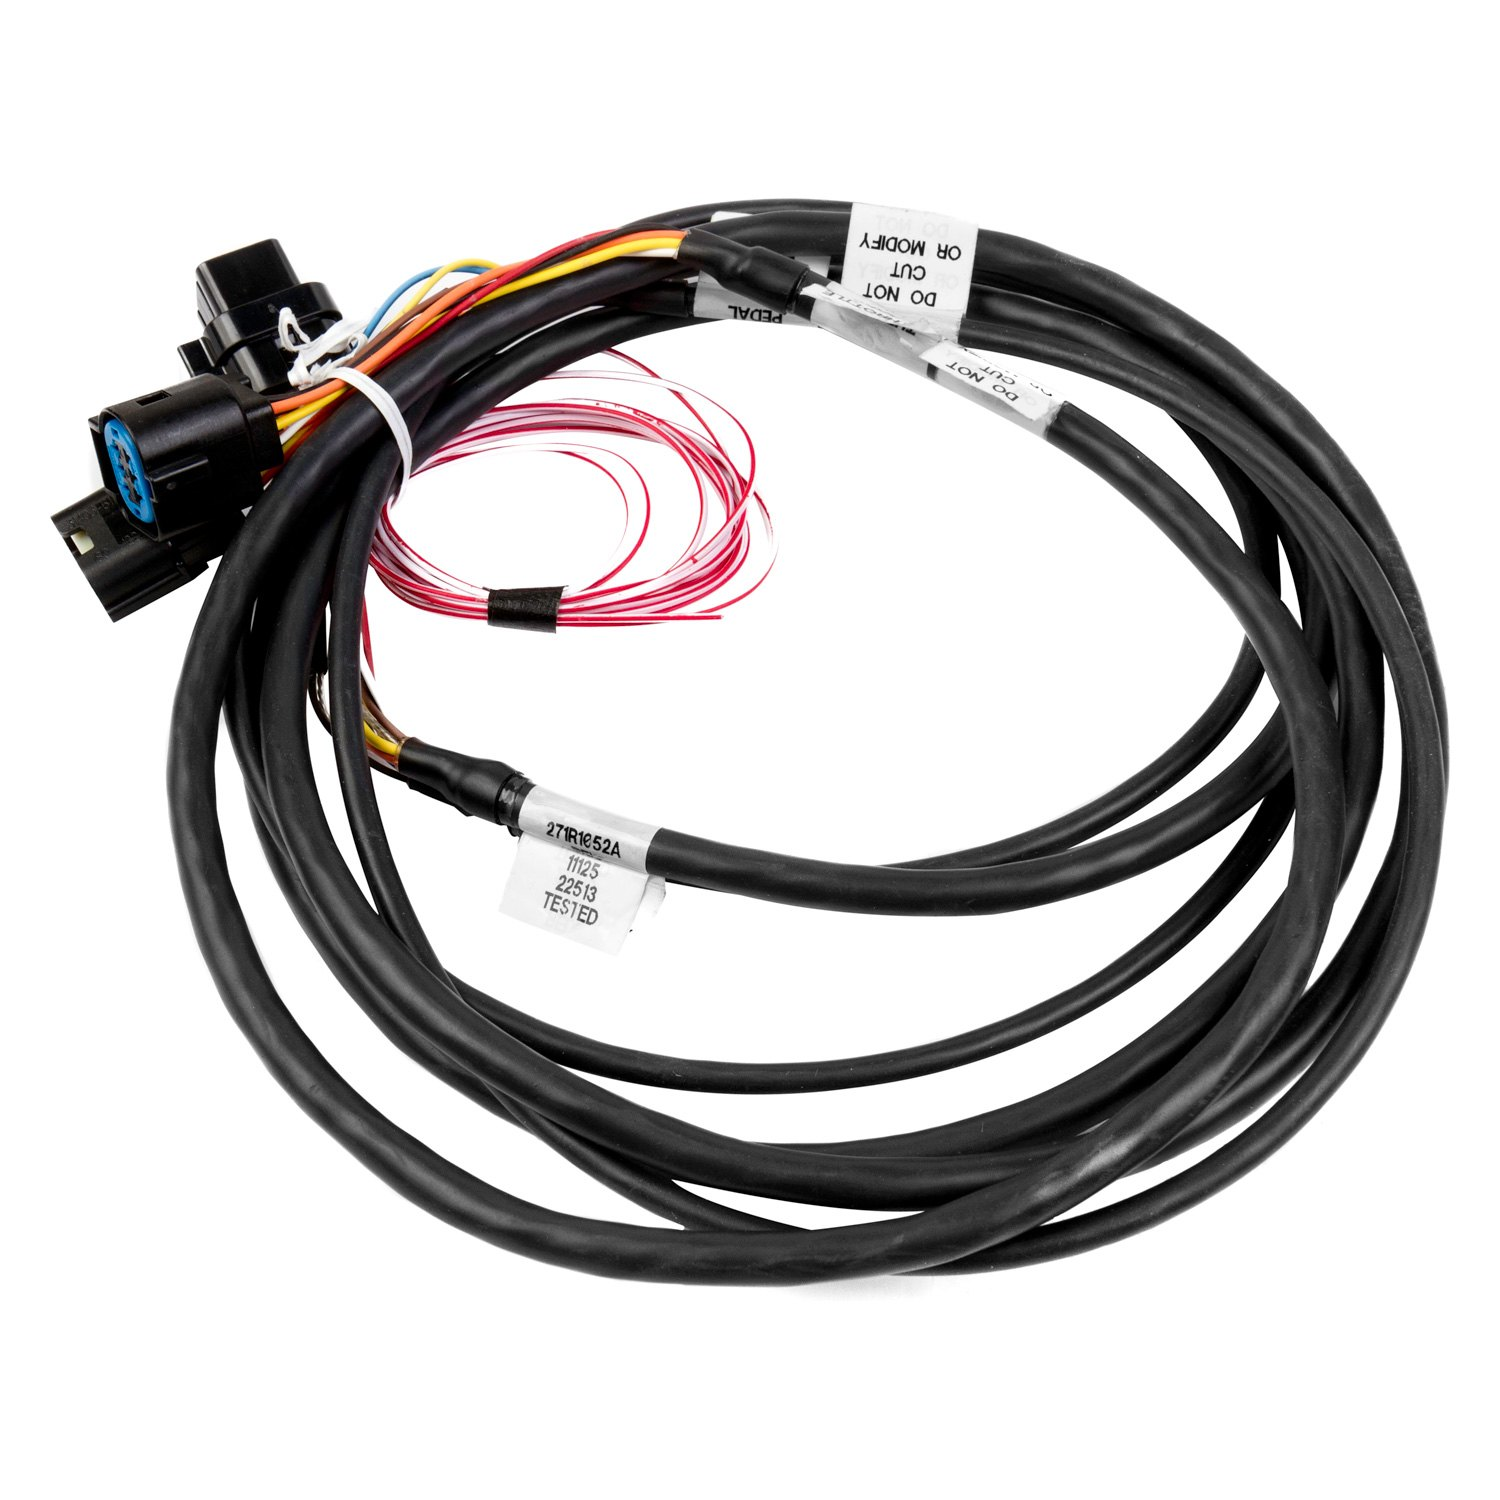 throttle body wiring harness 2007 chrysler 300 wiring library 2007 Chevy Colorado Throttle Body holley� drive by wire throttle body wiring harnesses holley� chrysler 300